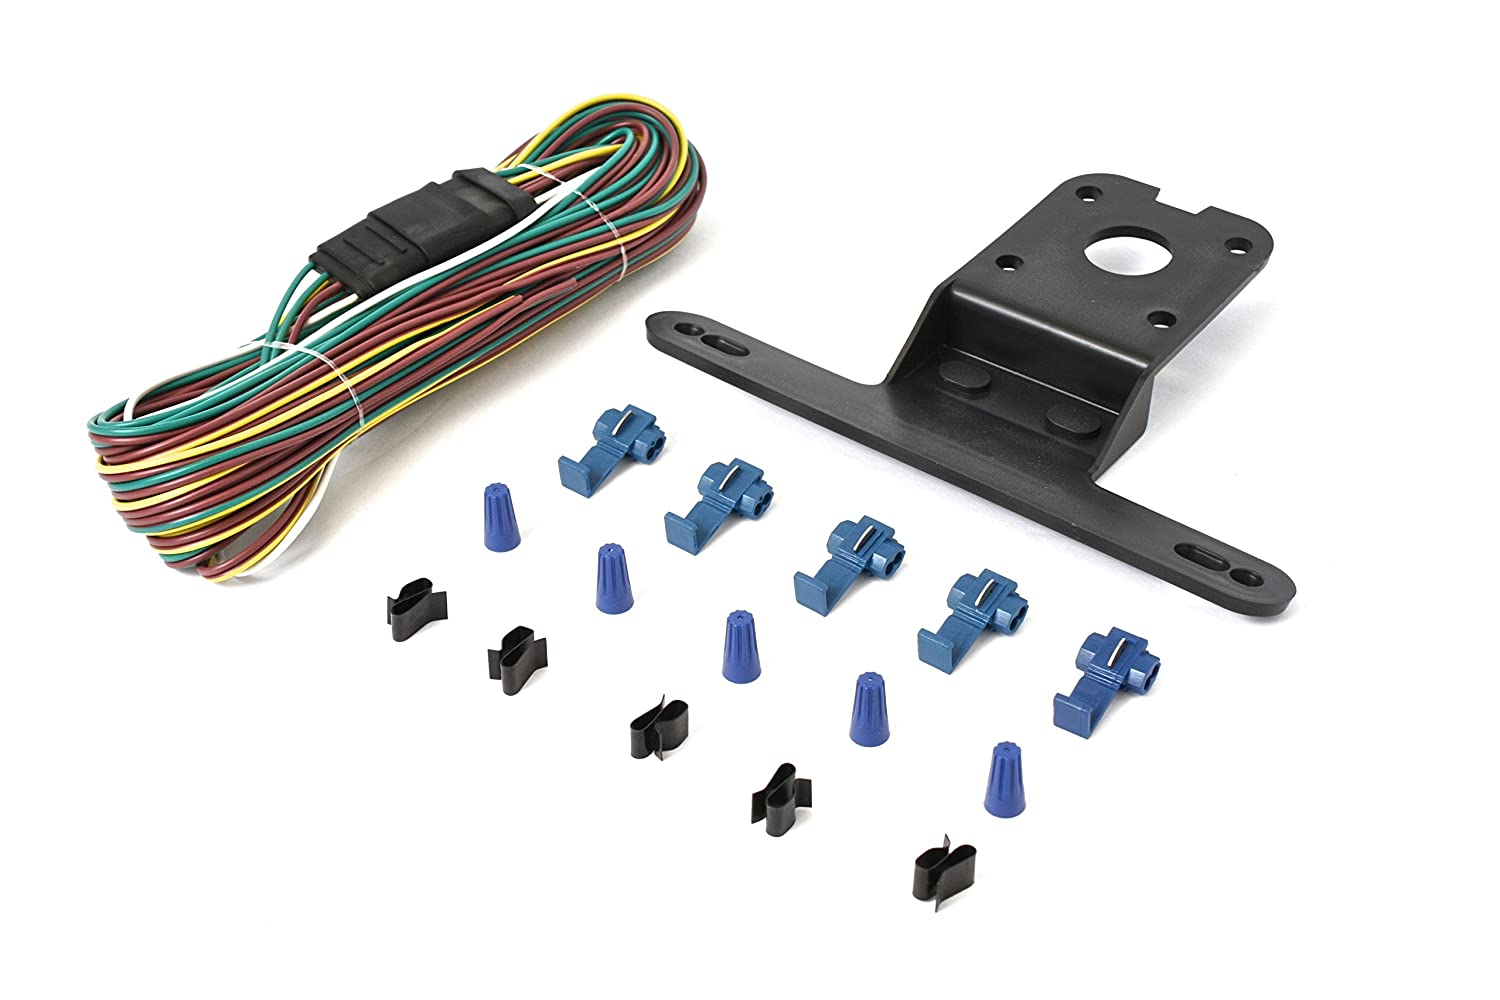 Maxxhaul 70205 12v All Led Submersible Trailer Light Kit 7 Wire Harness Test Automotive